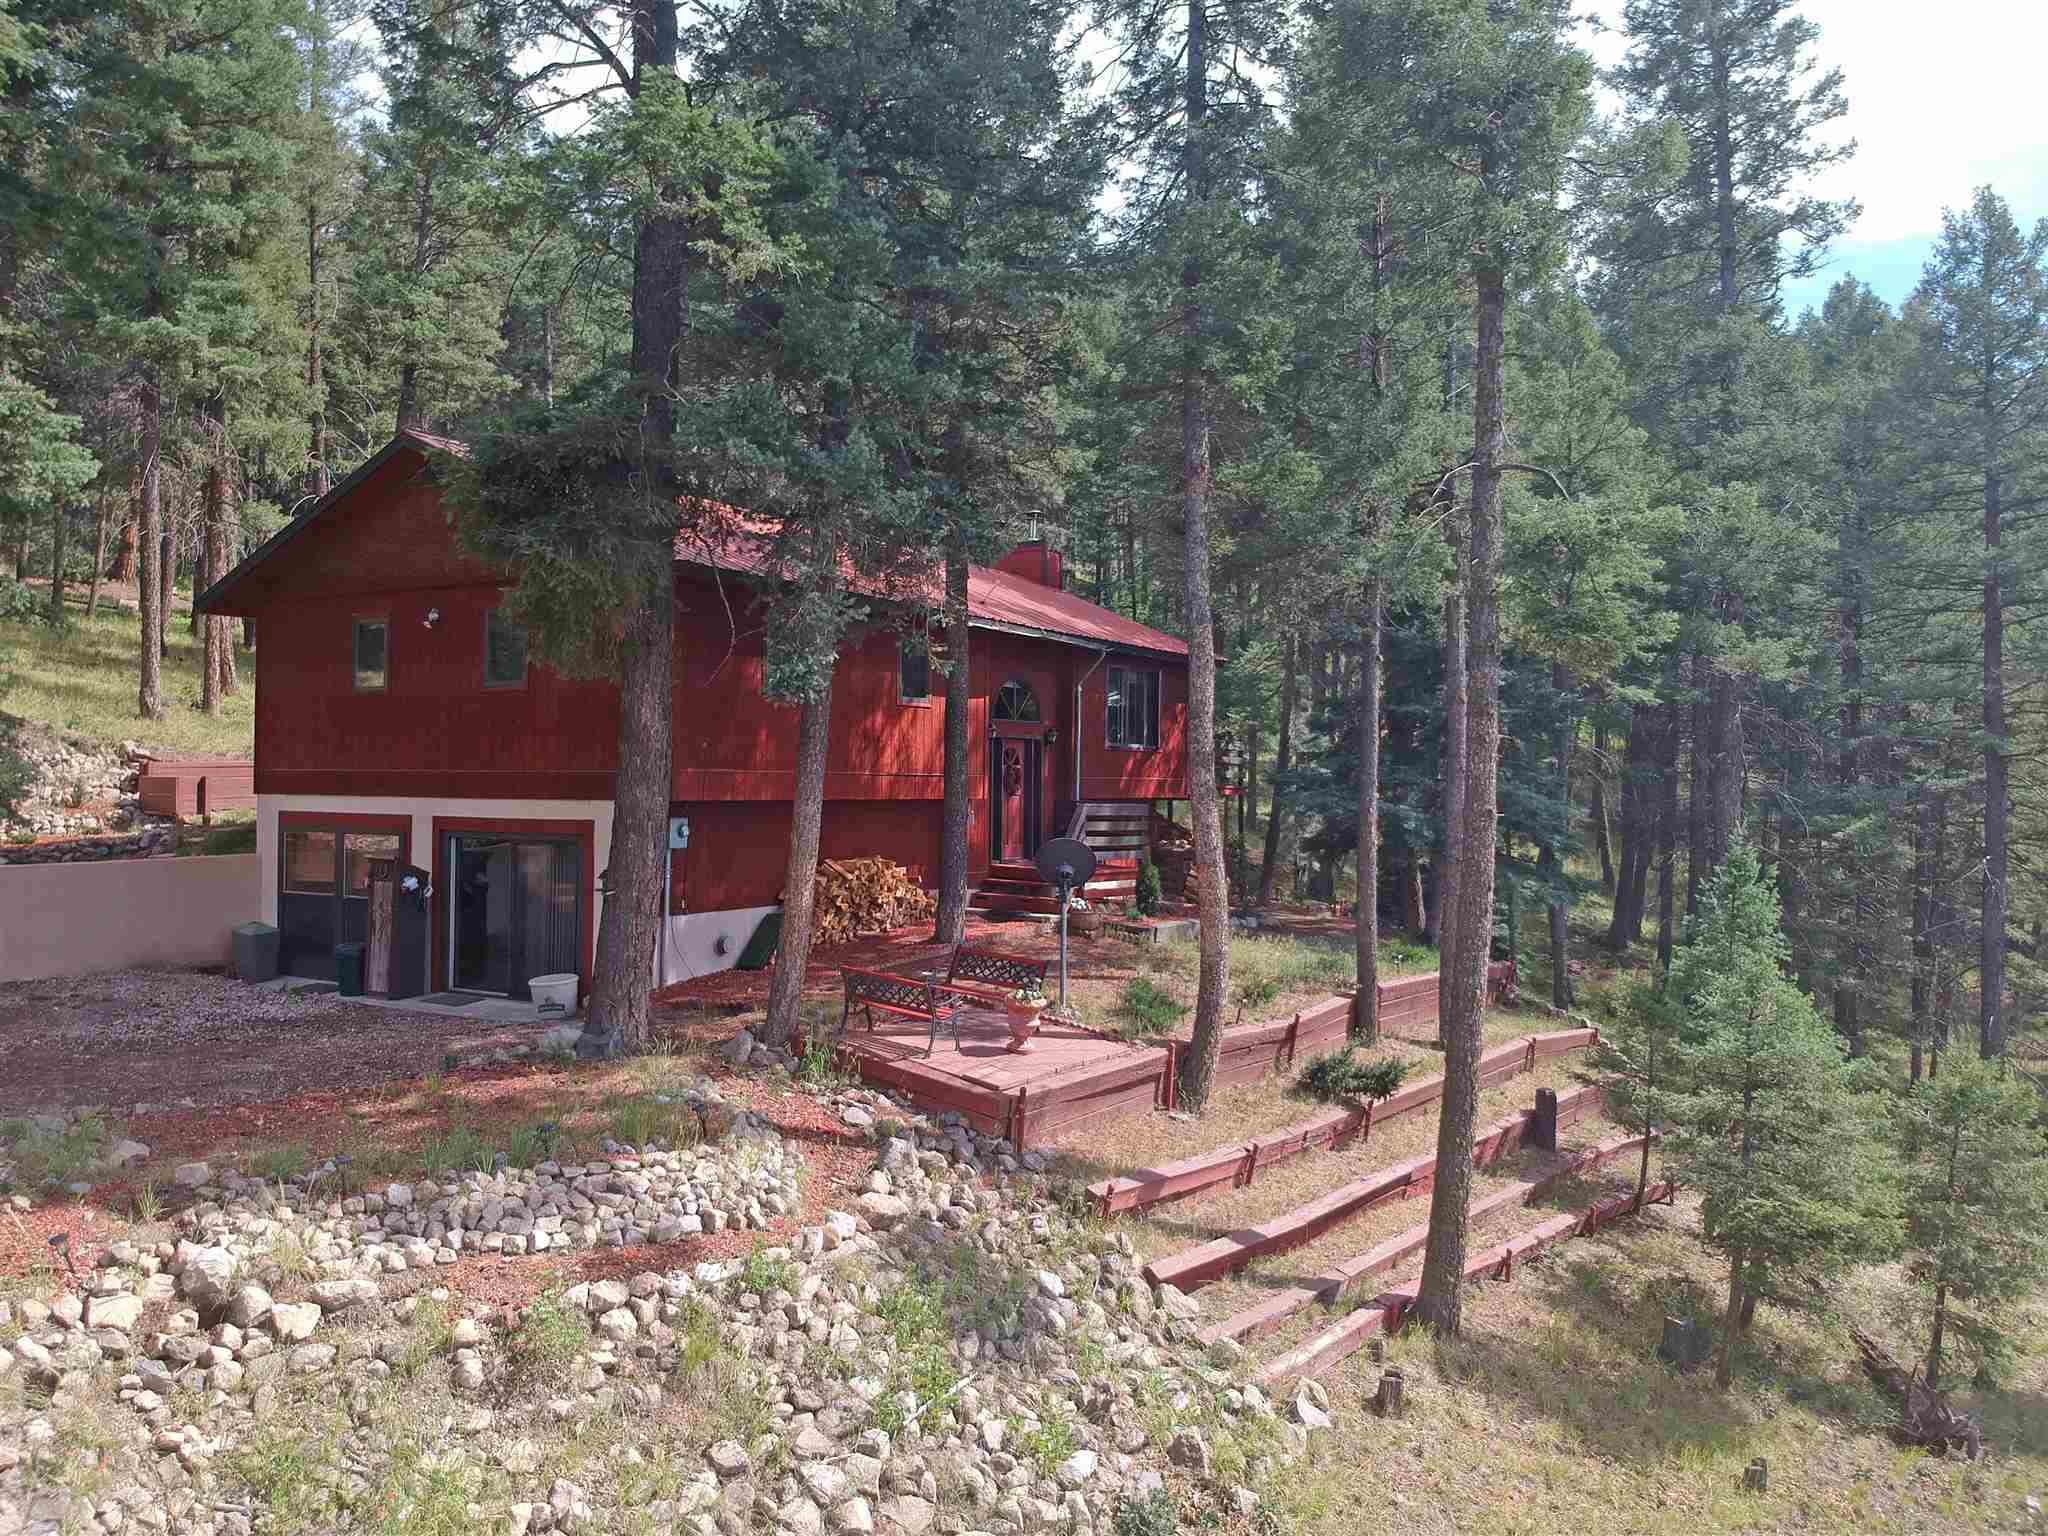 Life is good when you wake up every day to this stunning view AND have the Santa Fe National Forest as your extended backyard! Take it all in on the spacious deck of this well built, sturdy 4-bedroom, 2 bath home with a home office. Open concept living room & kitchen with plenty of counter space & cabinets. The garage has been closed in & made into a rec room, but could easily be converted back if you prefer. Situated on over 2 acres of thinned Ponderosa Pines, within the Sierra los Piños Subdivision, the delightfully landscaped property backs up to Santa Fe Natl. Forest and has an old abandoned logging road leading right into it just waiting for you & your outdoor adventures. Minimal road traffic makes it quiet and peaceful, but yet just a short 30-minute drive into Los Alamos.